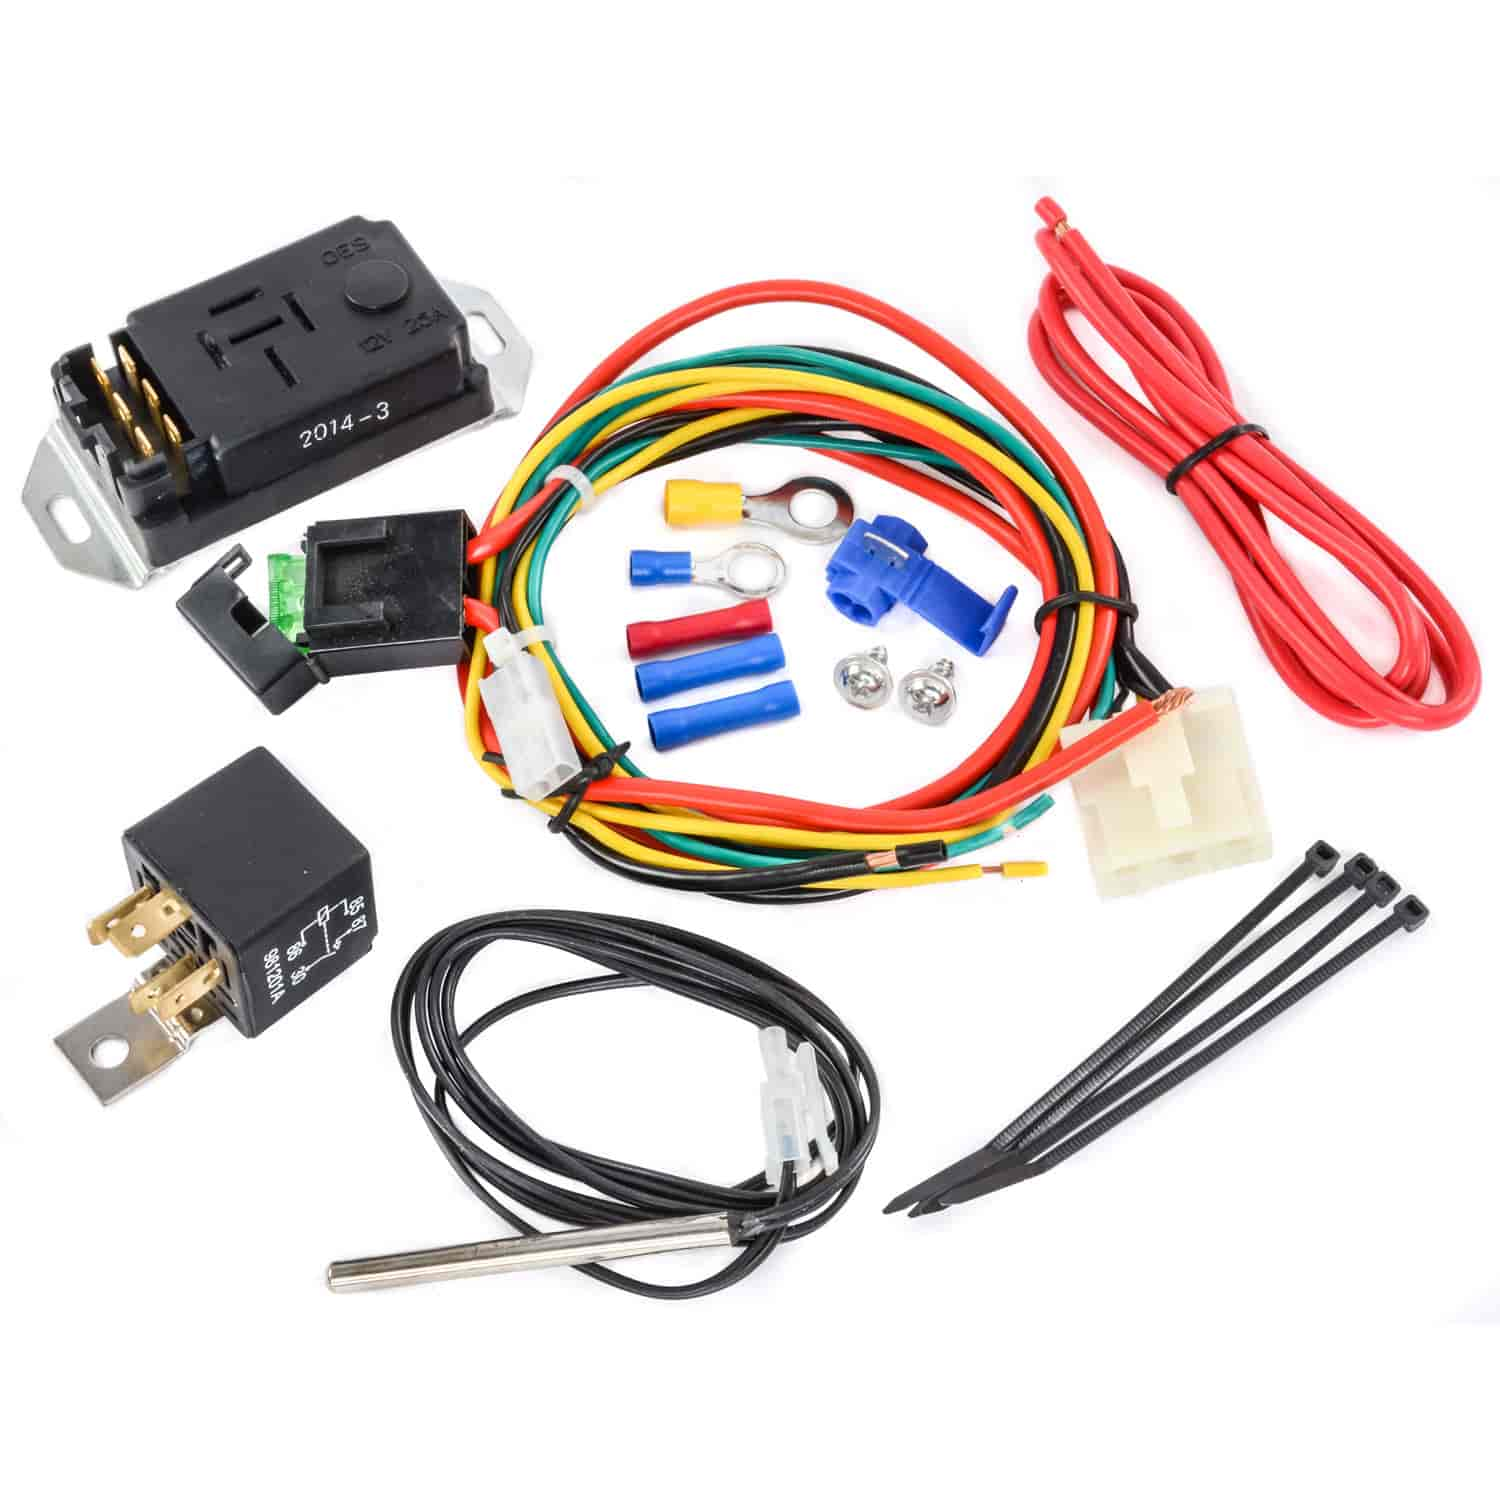 hight resolution of proform 69599 adjustable electric fan controller kit with push in proform electric fan wiring diagram